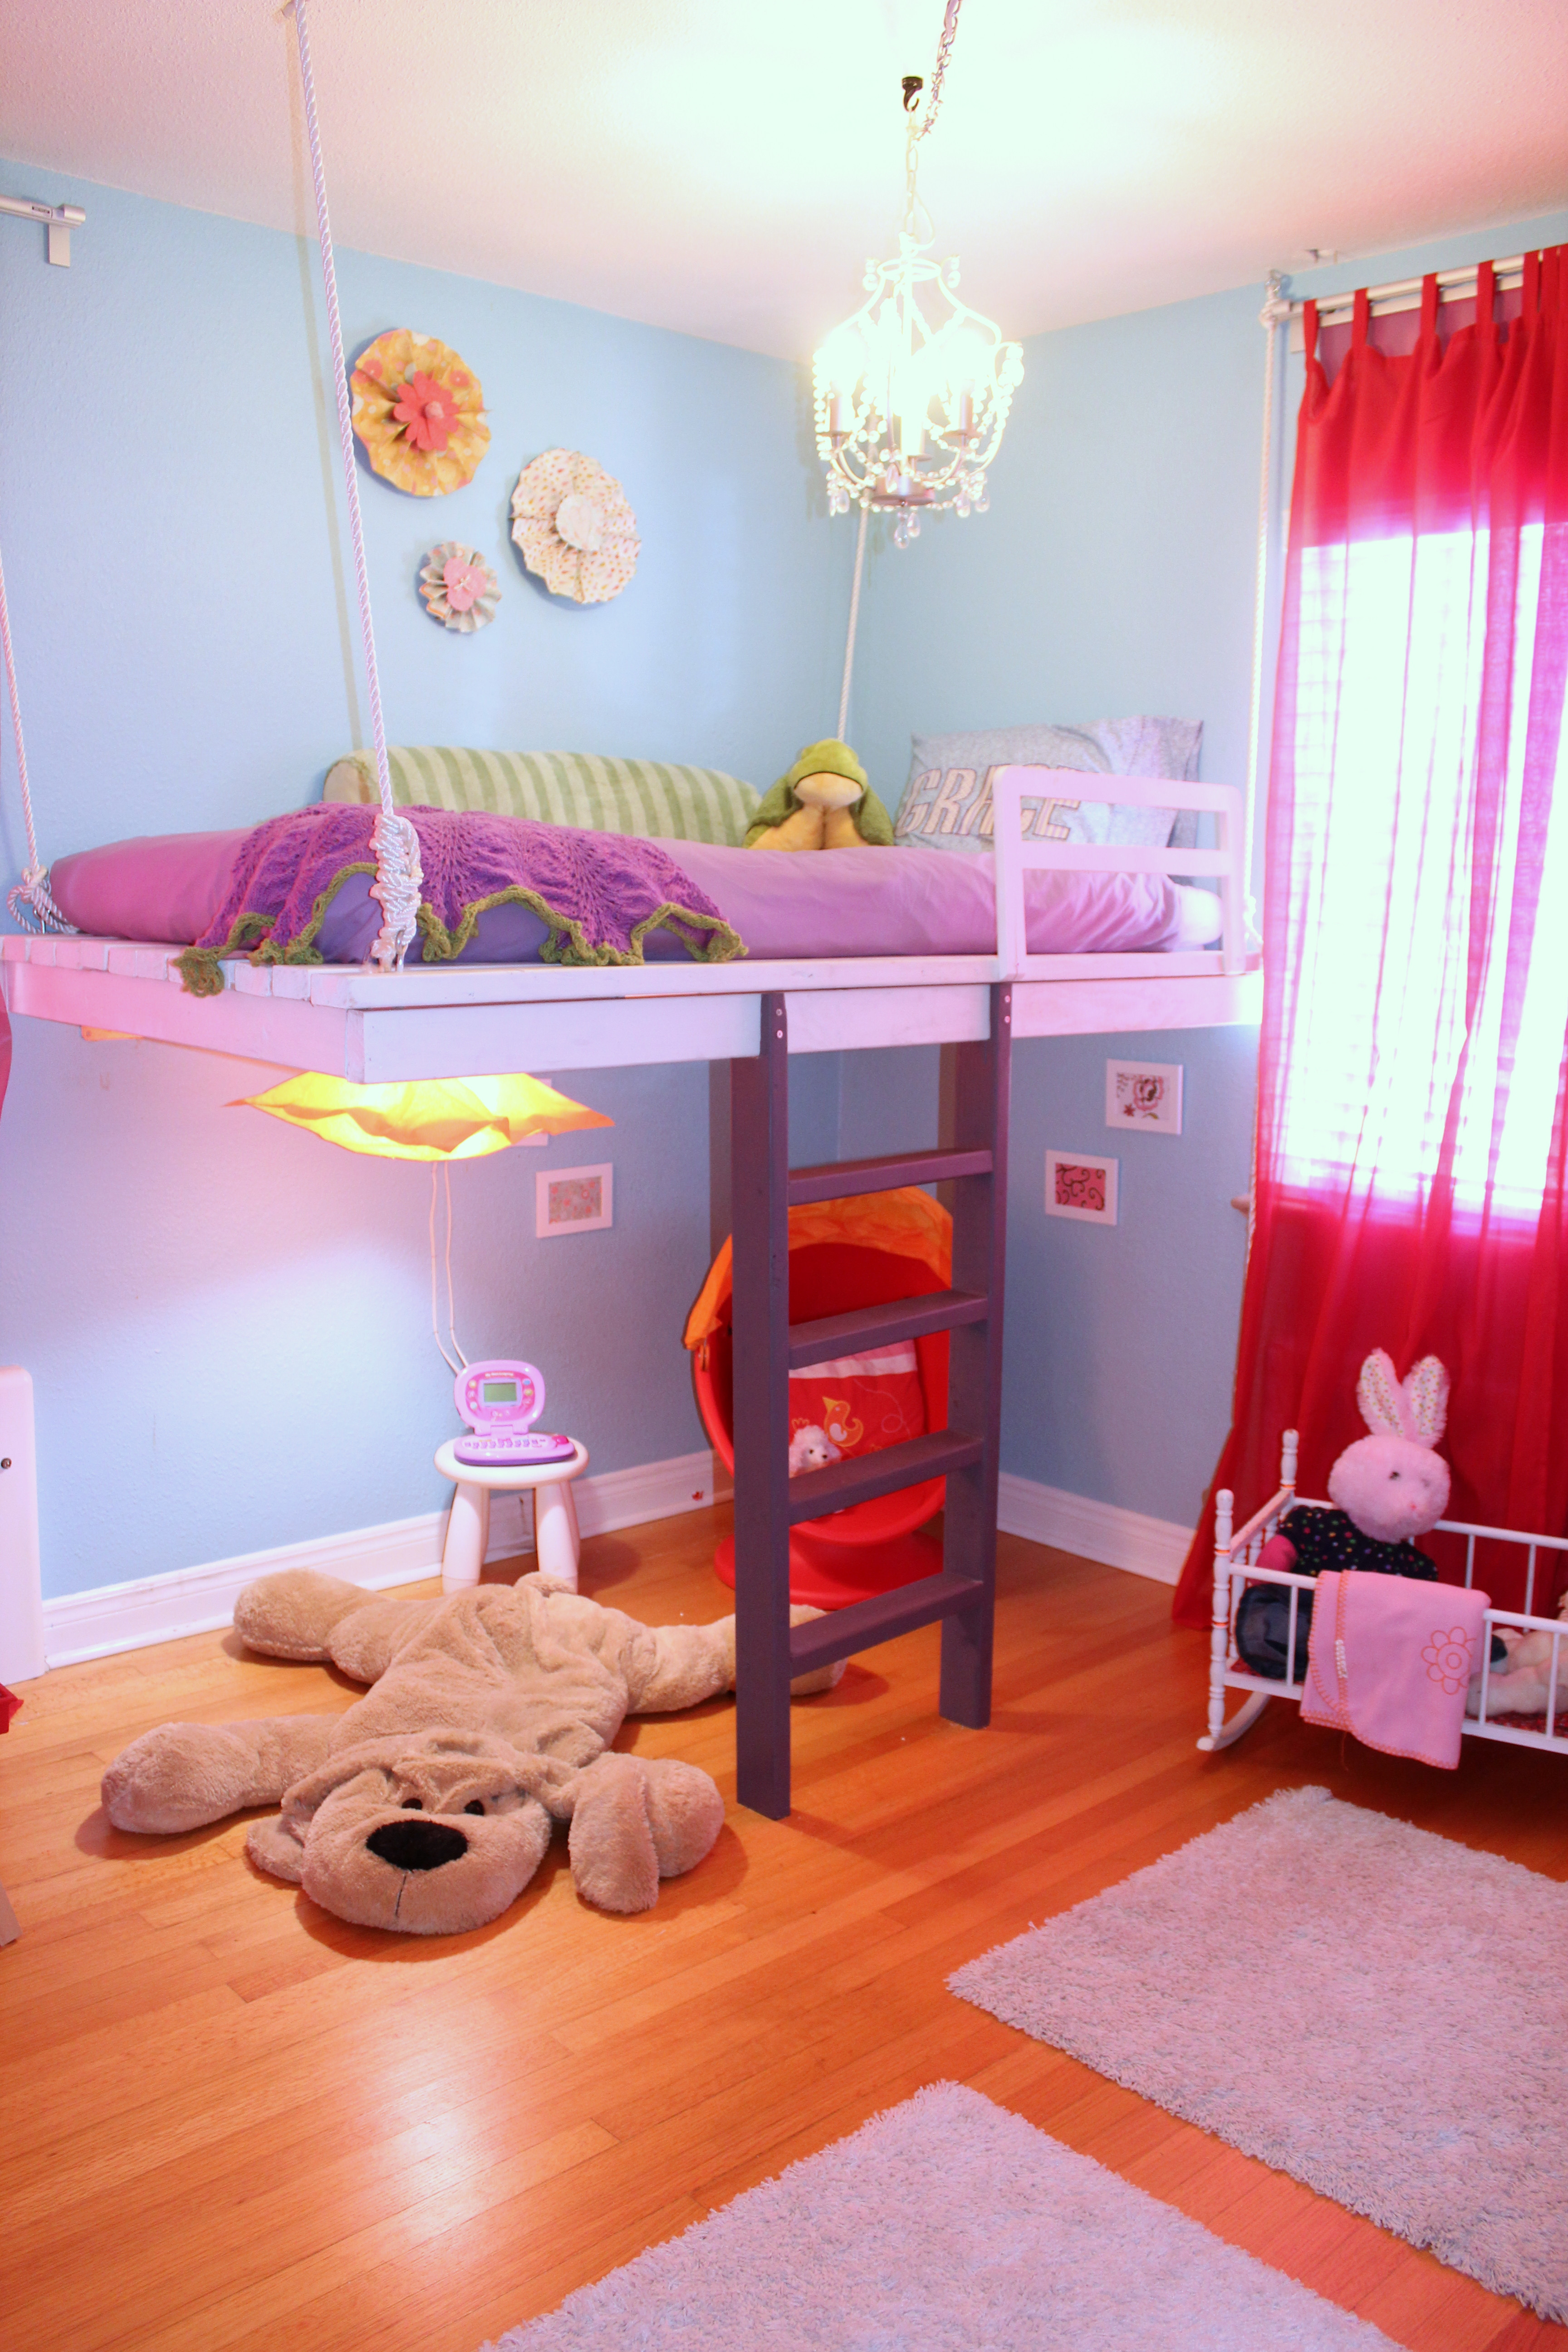 Best ideas about DIY Girls Beds . Save or Pin Ana White Now.